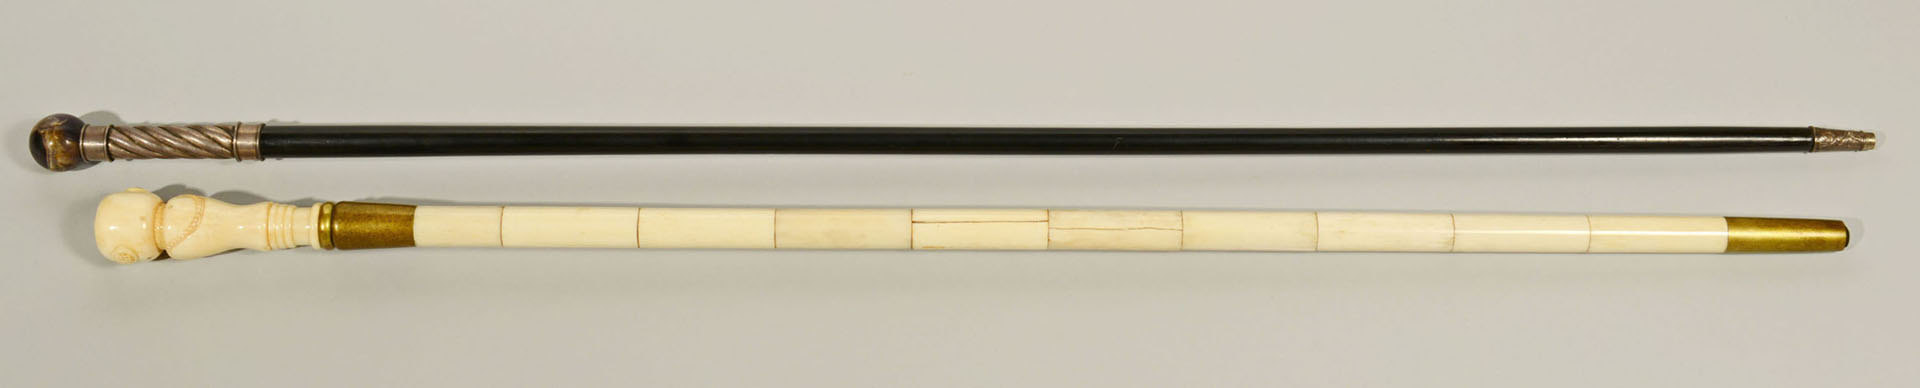 Lot 264: Lot of 2 Canes, Bone & Marble